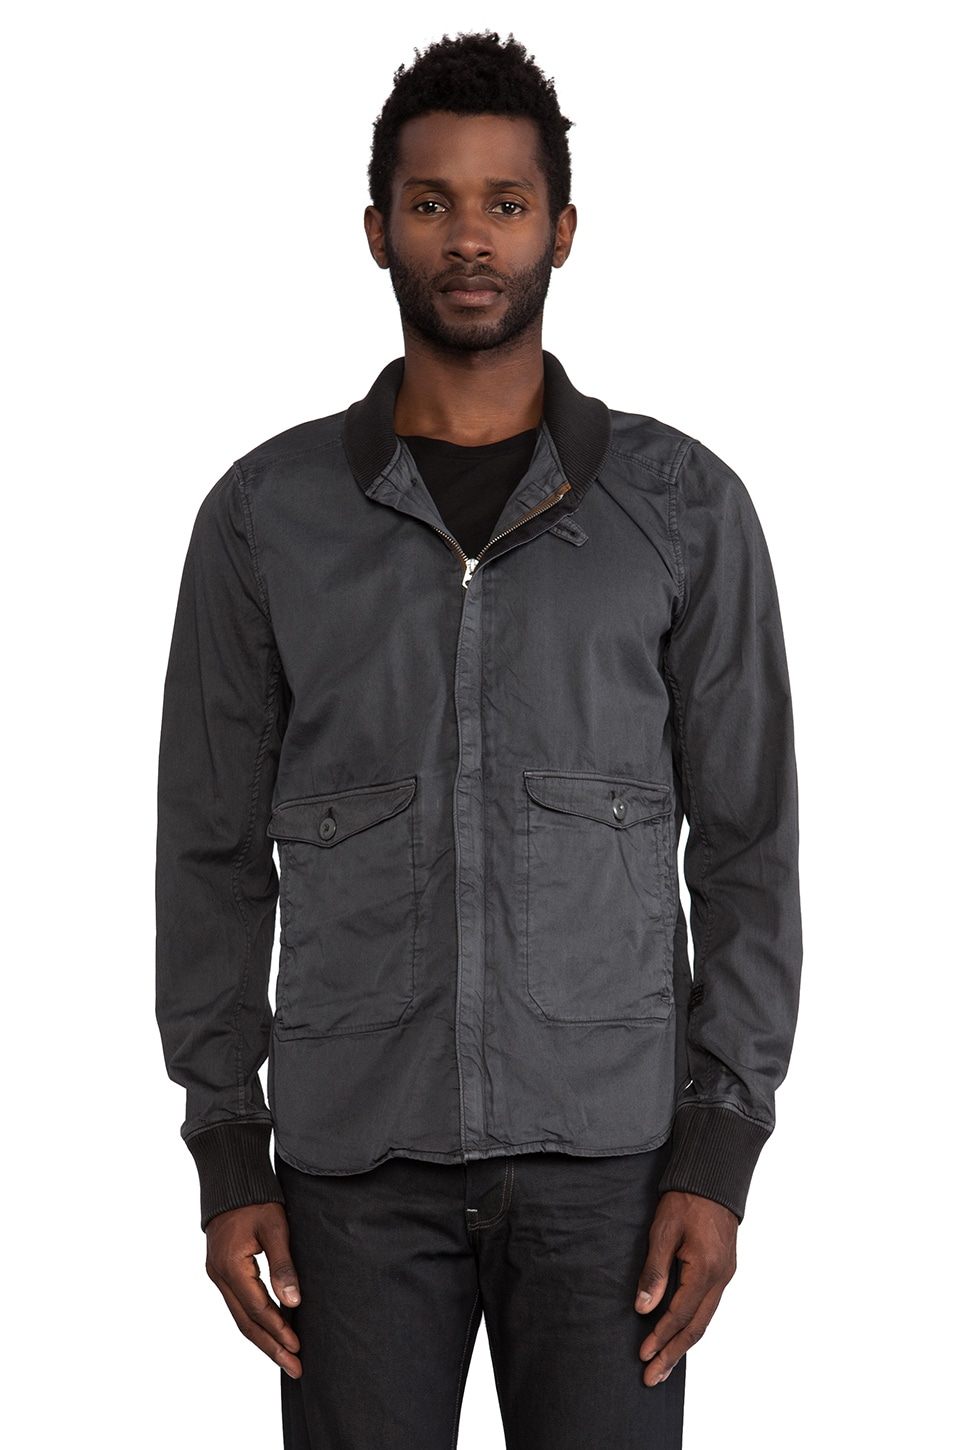 G-Star Harben Overshirt Premium in Bullit